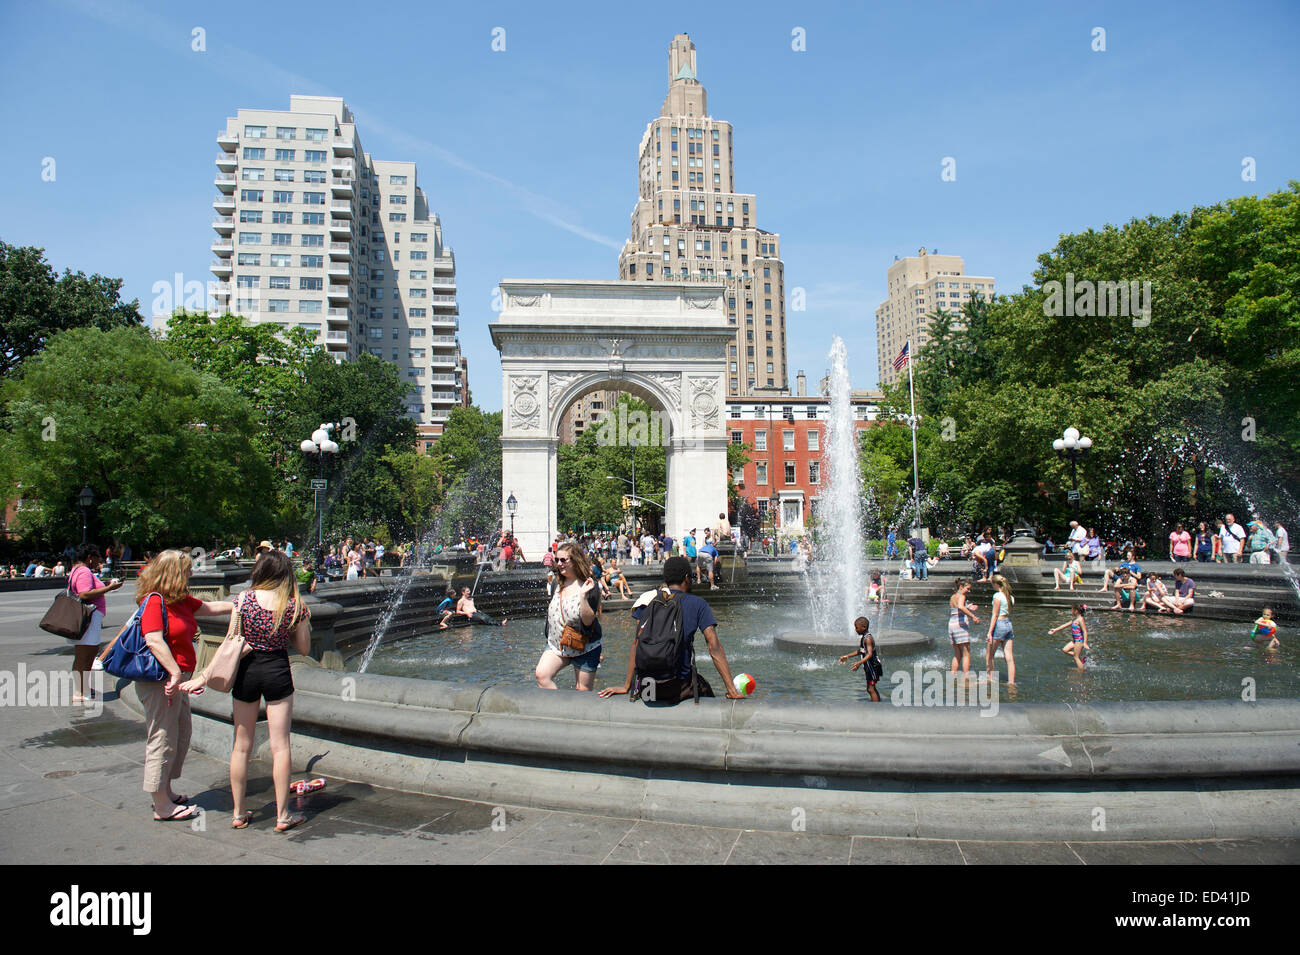 NEW YORK CITY, USA - JUNE 2014: People gather at the fountain in Washington Square Park on a bright summer afternoon. Stock Photo